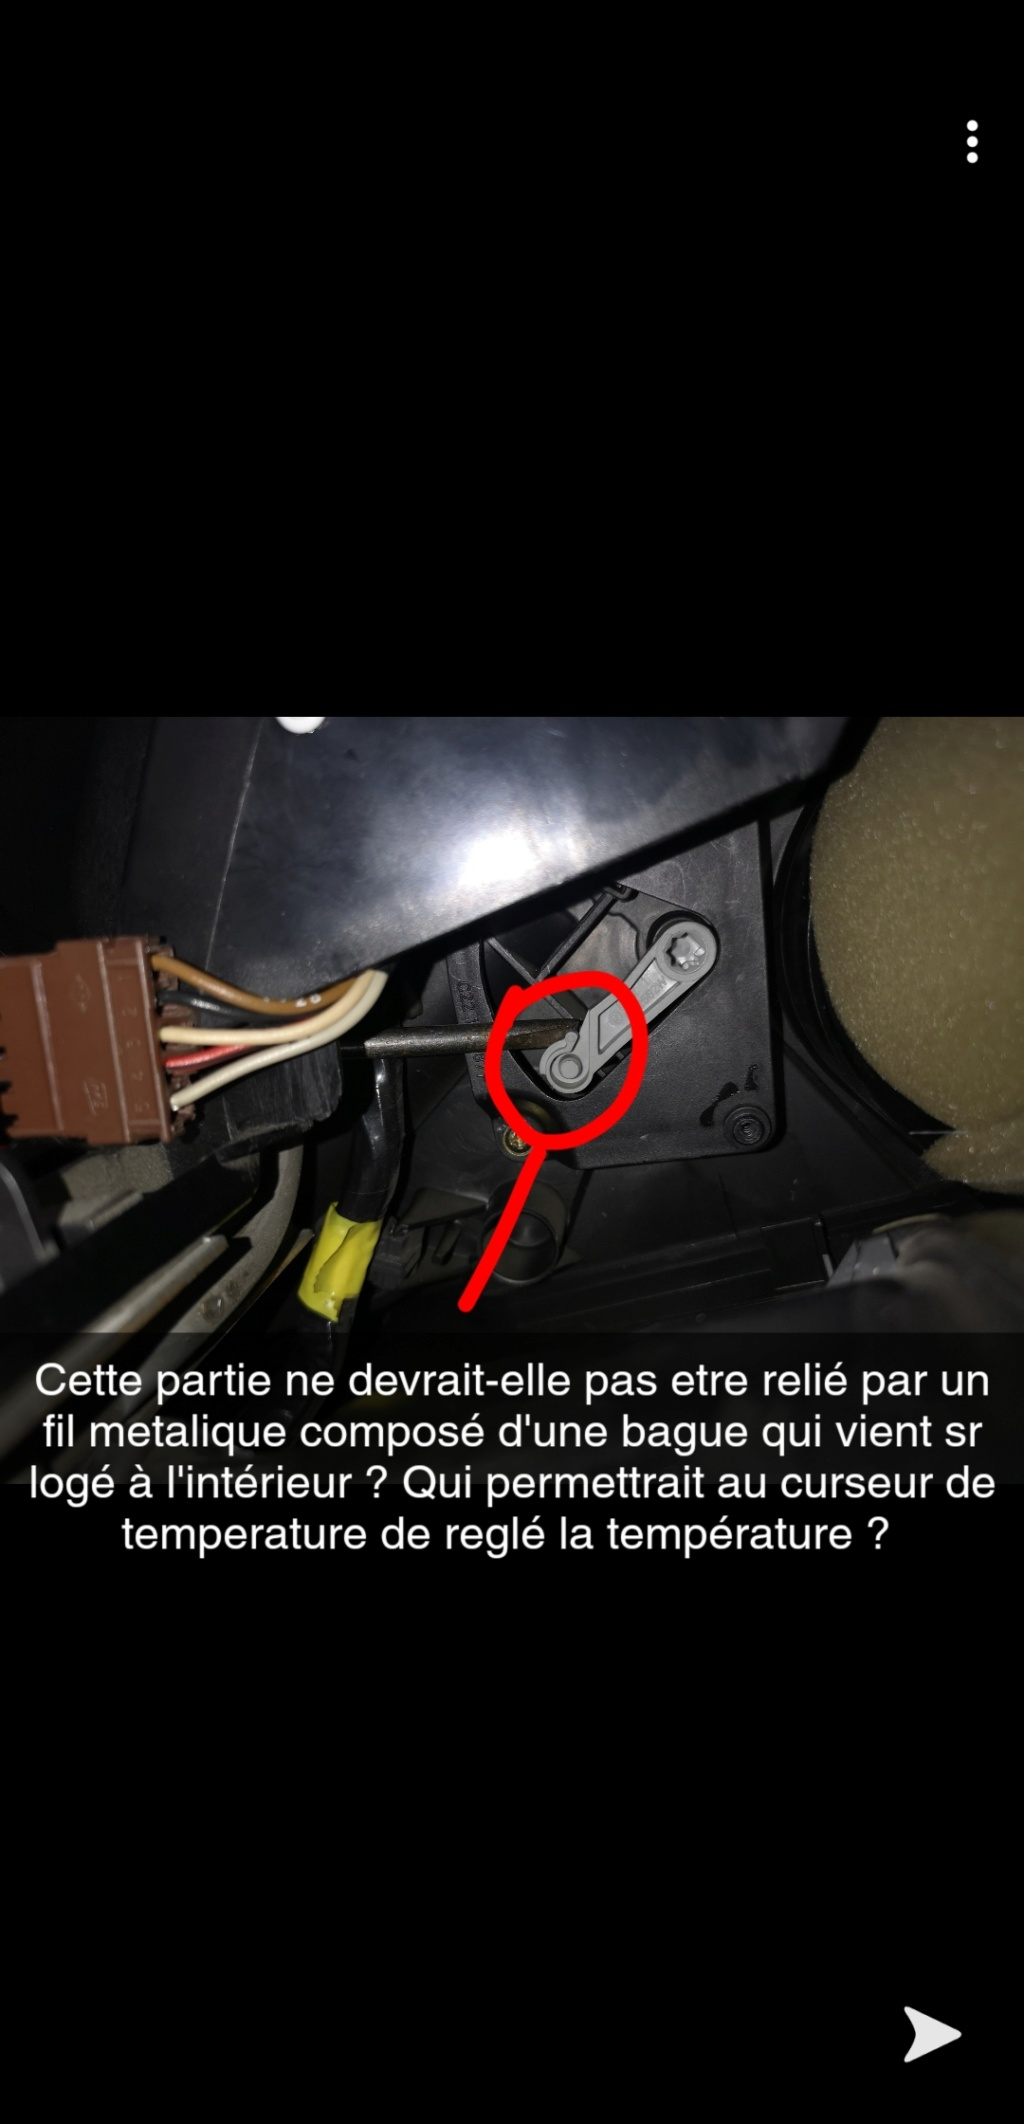 [REPORTAGE] Usinage des engrenages du motoréducteur de clim Screen10